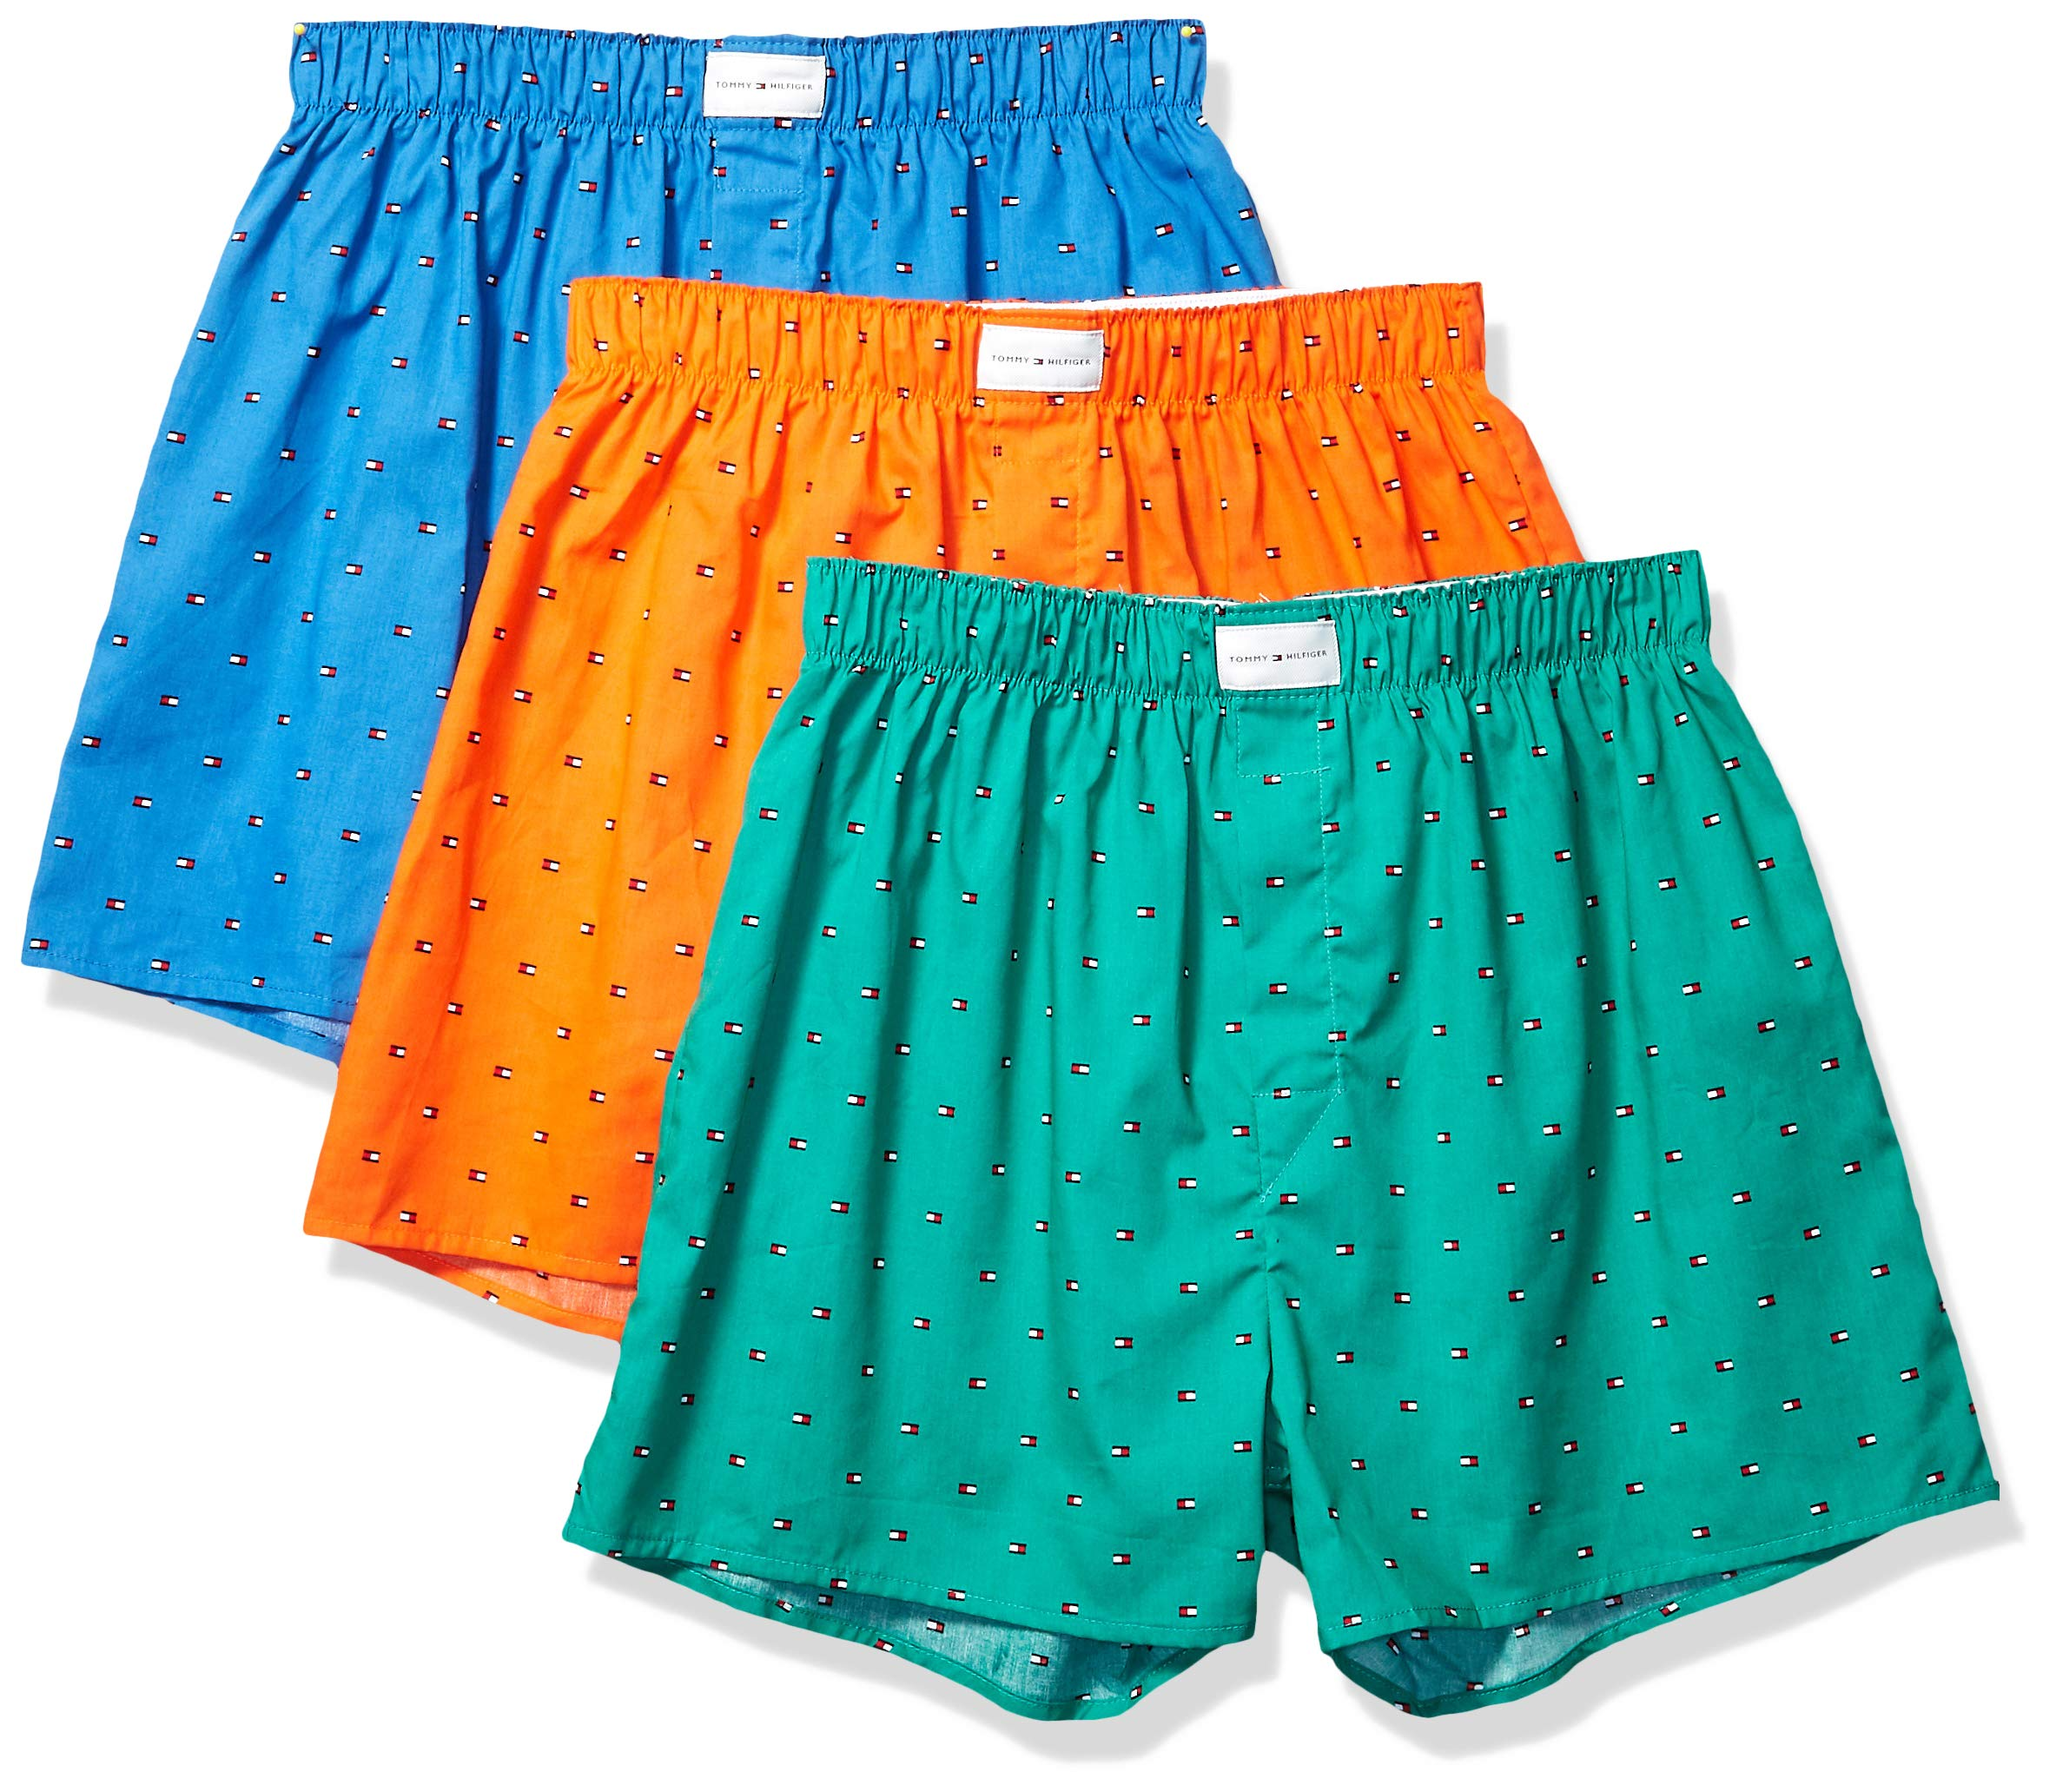 Tommy Hilfiger Men's Underwear Multipack Cotton Classics Woven Boxer, Green Multi (Multi 3 Pack), XX-Large by Tommy Hilfiger